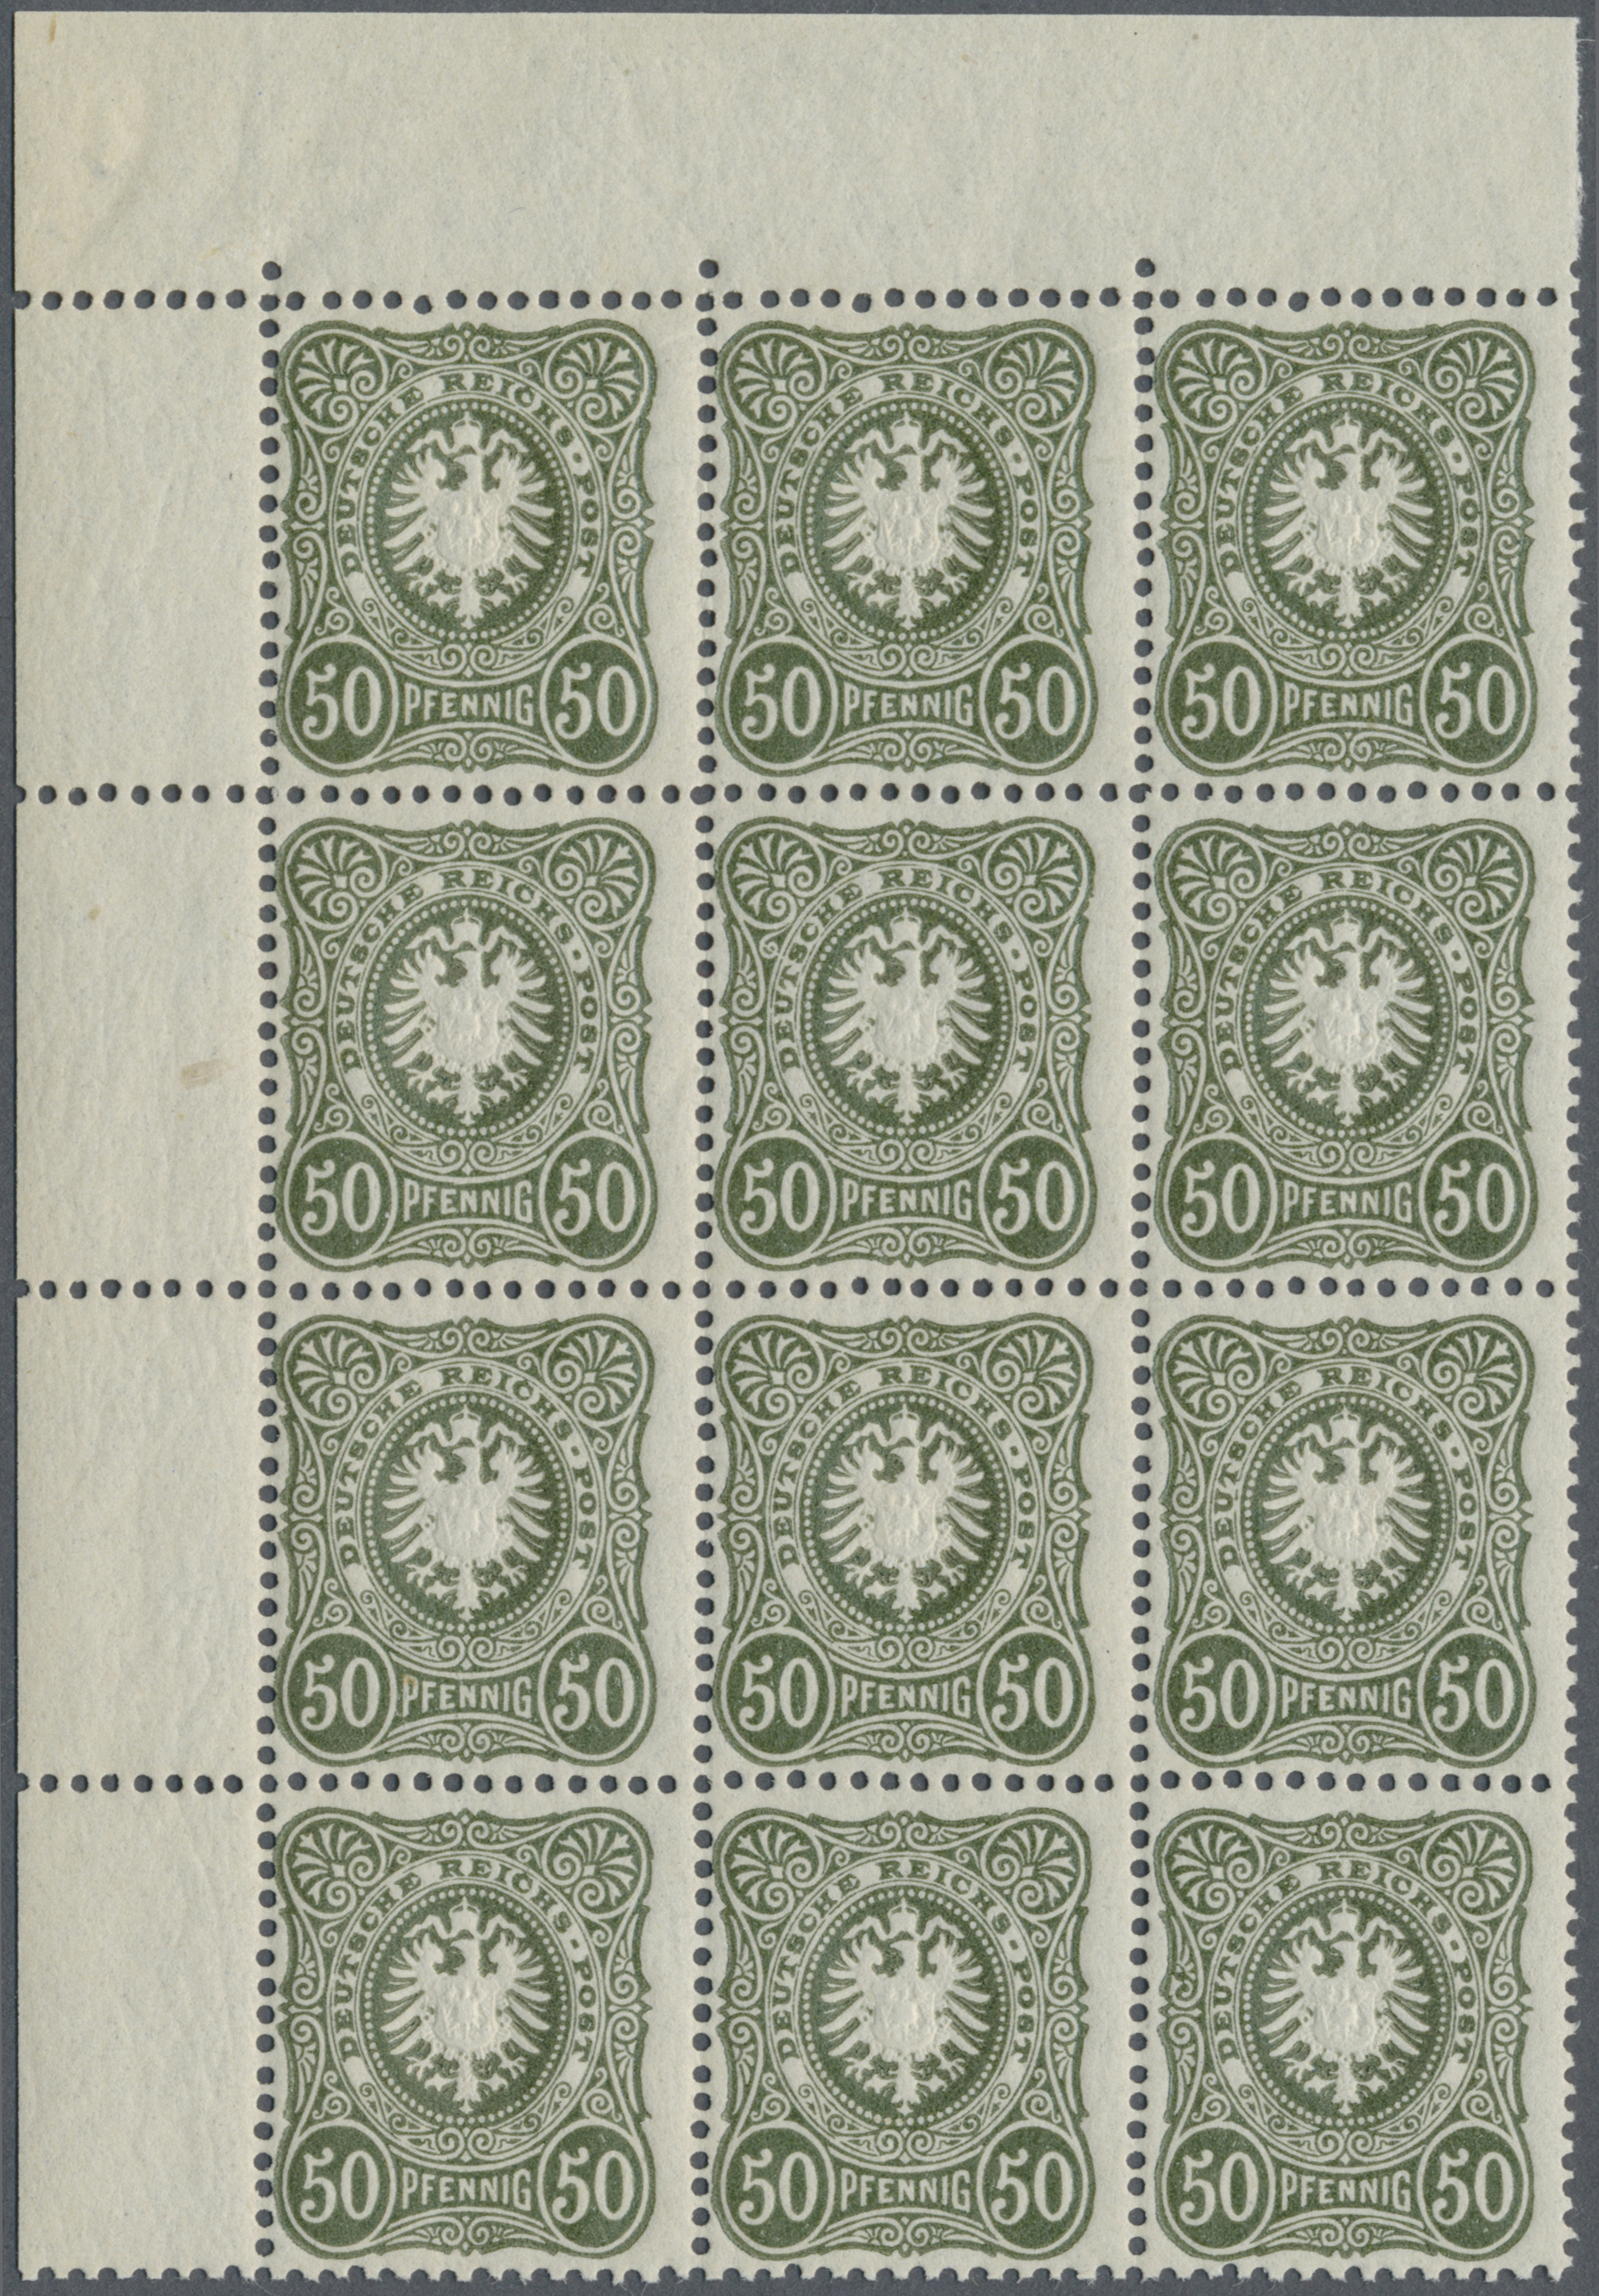 Lot 1266 - Deutsches Reich - Pfennig  -  Auktionshaus Christoph Gärtner GmbH & Co. KG Auction #41 Special auction part two